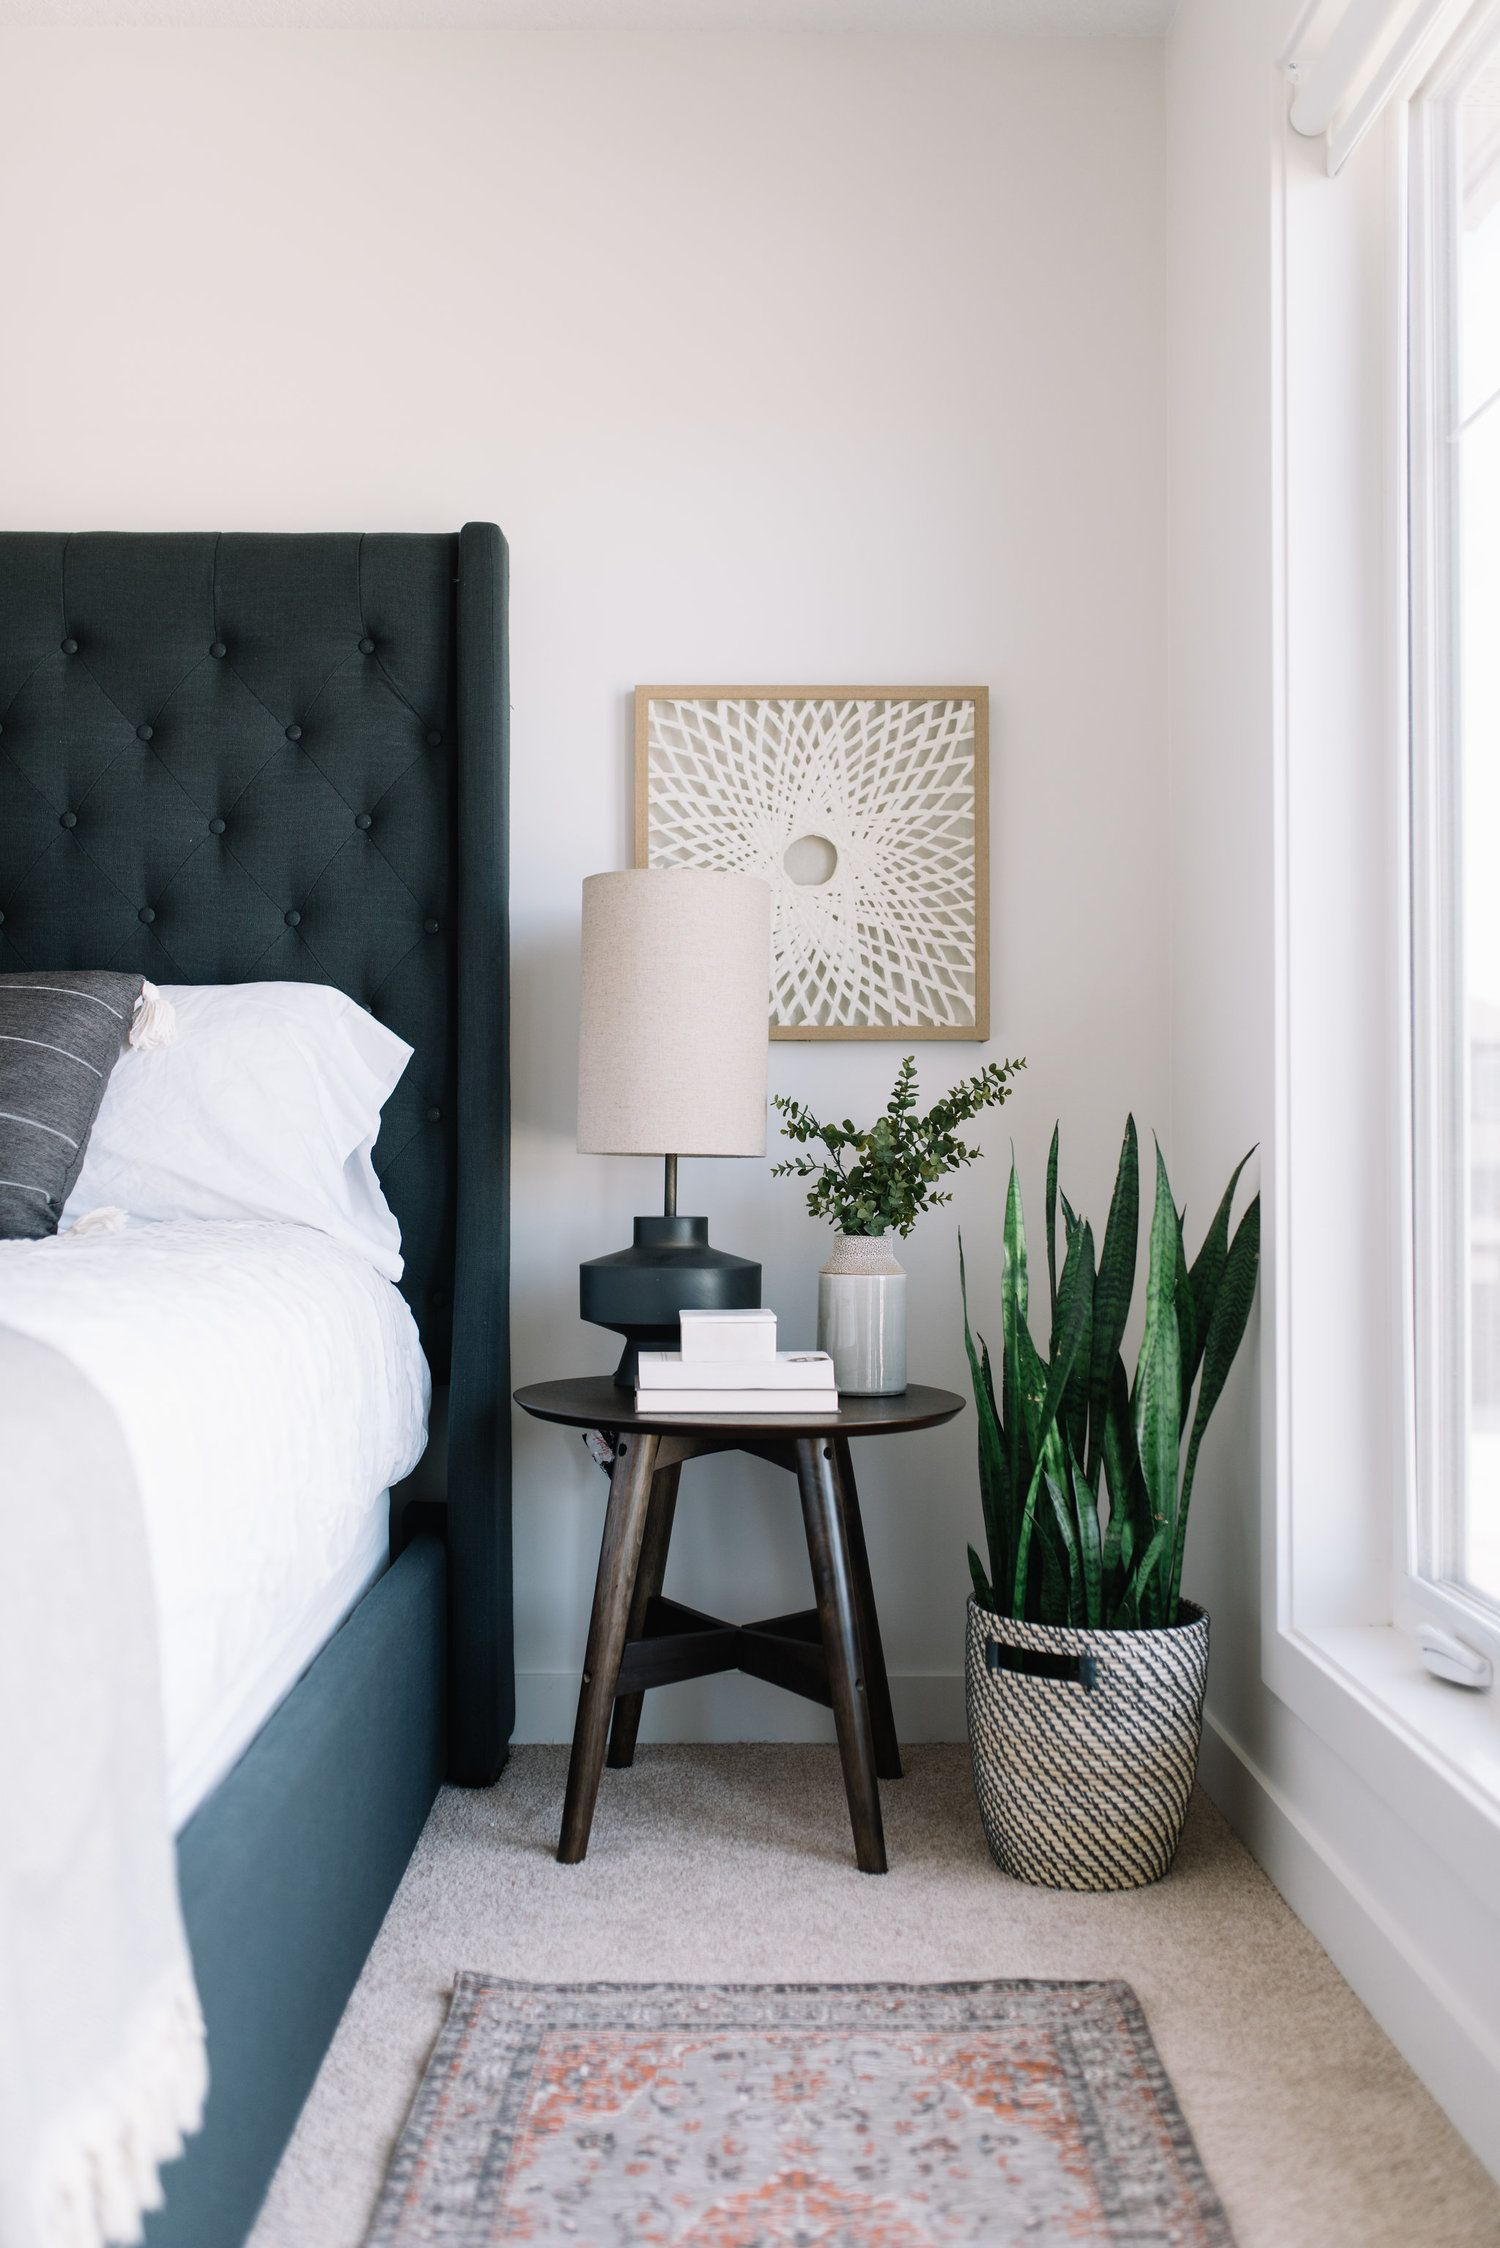 Small Bedside Table Ideas: Moving Up! A Peek At Our Bedroom Refresh